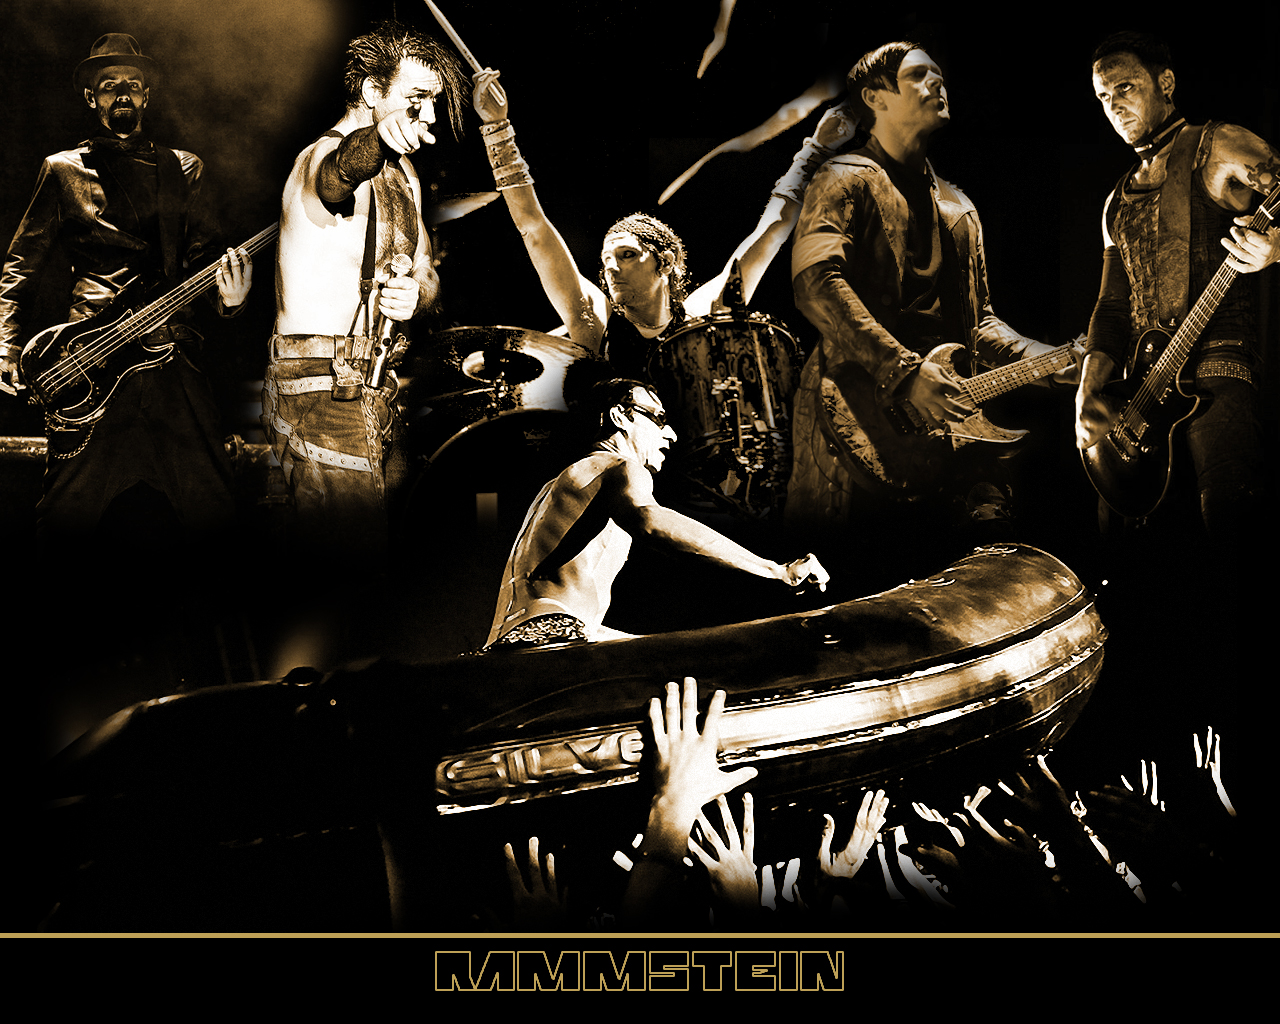 Rammstein wallpaper widescreen 1920x1080 for pinterest